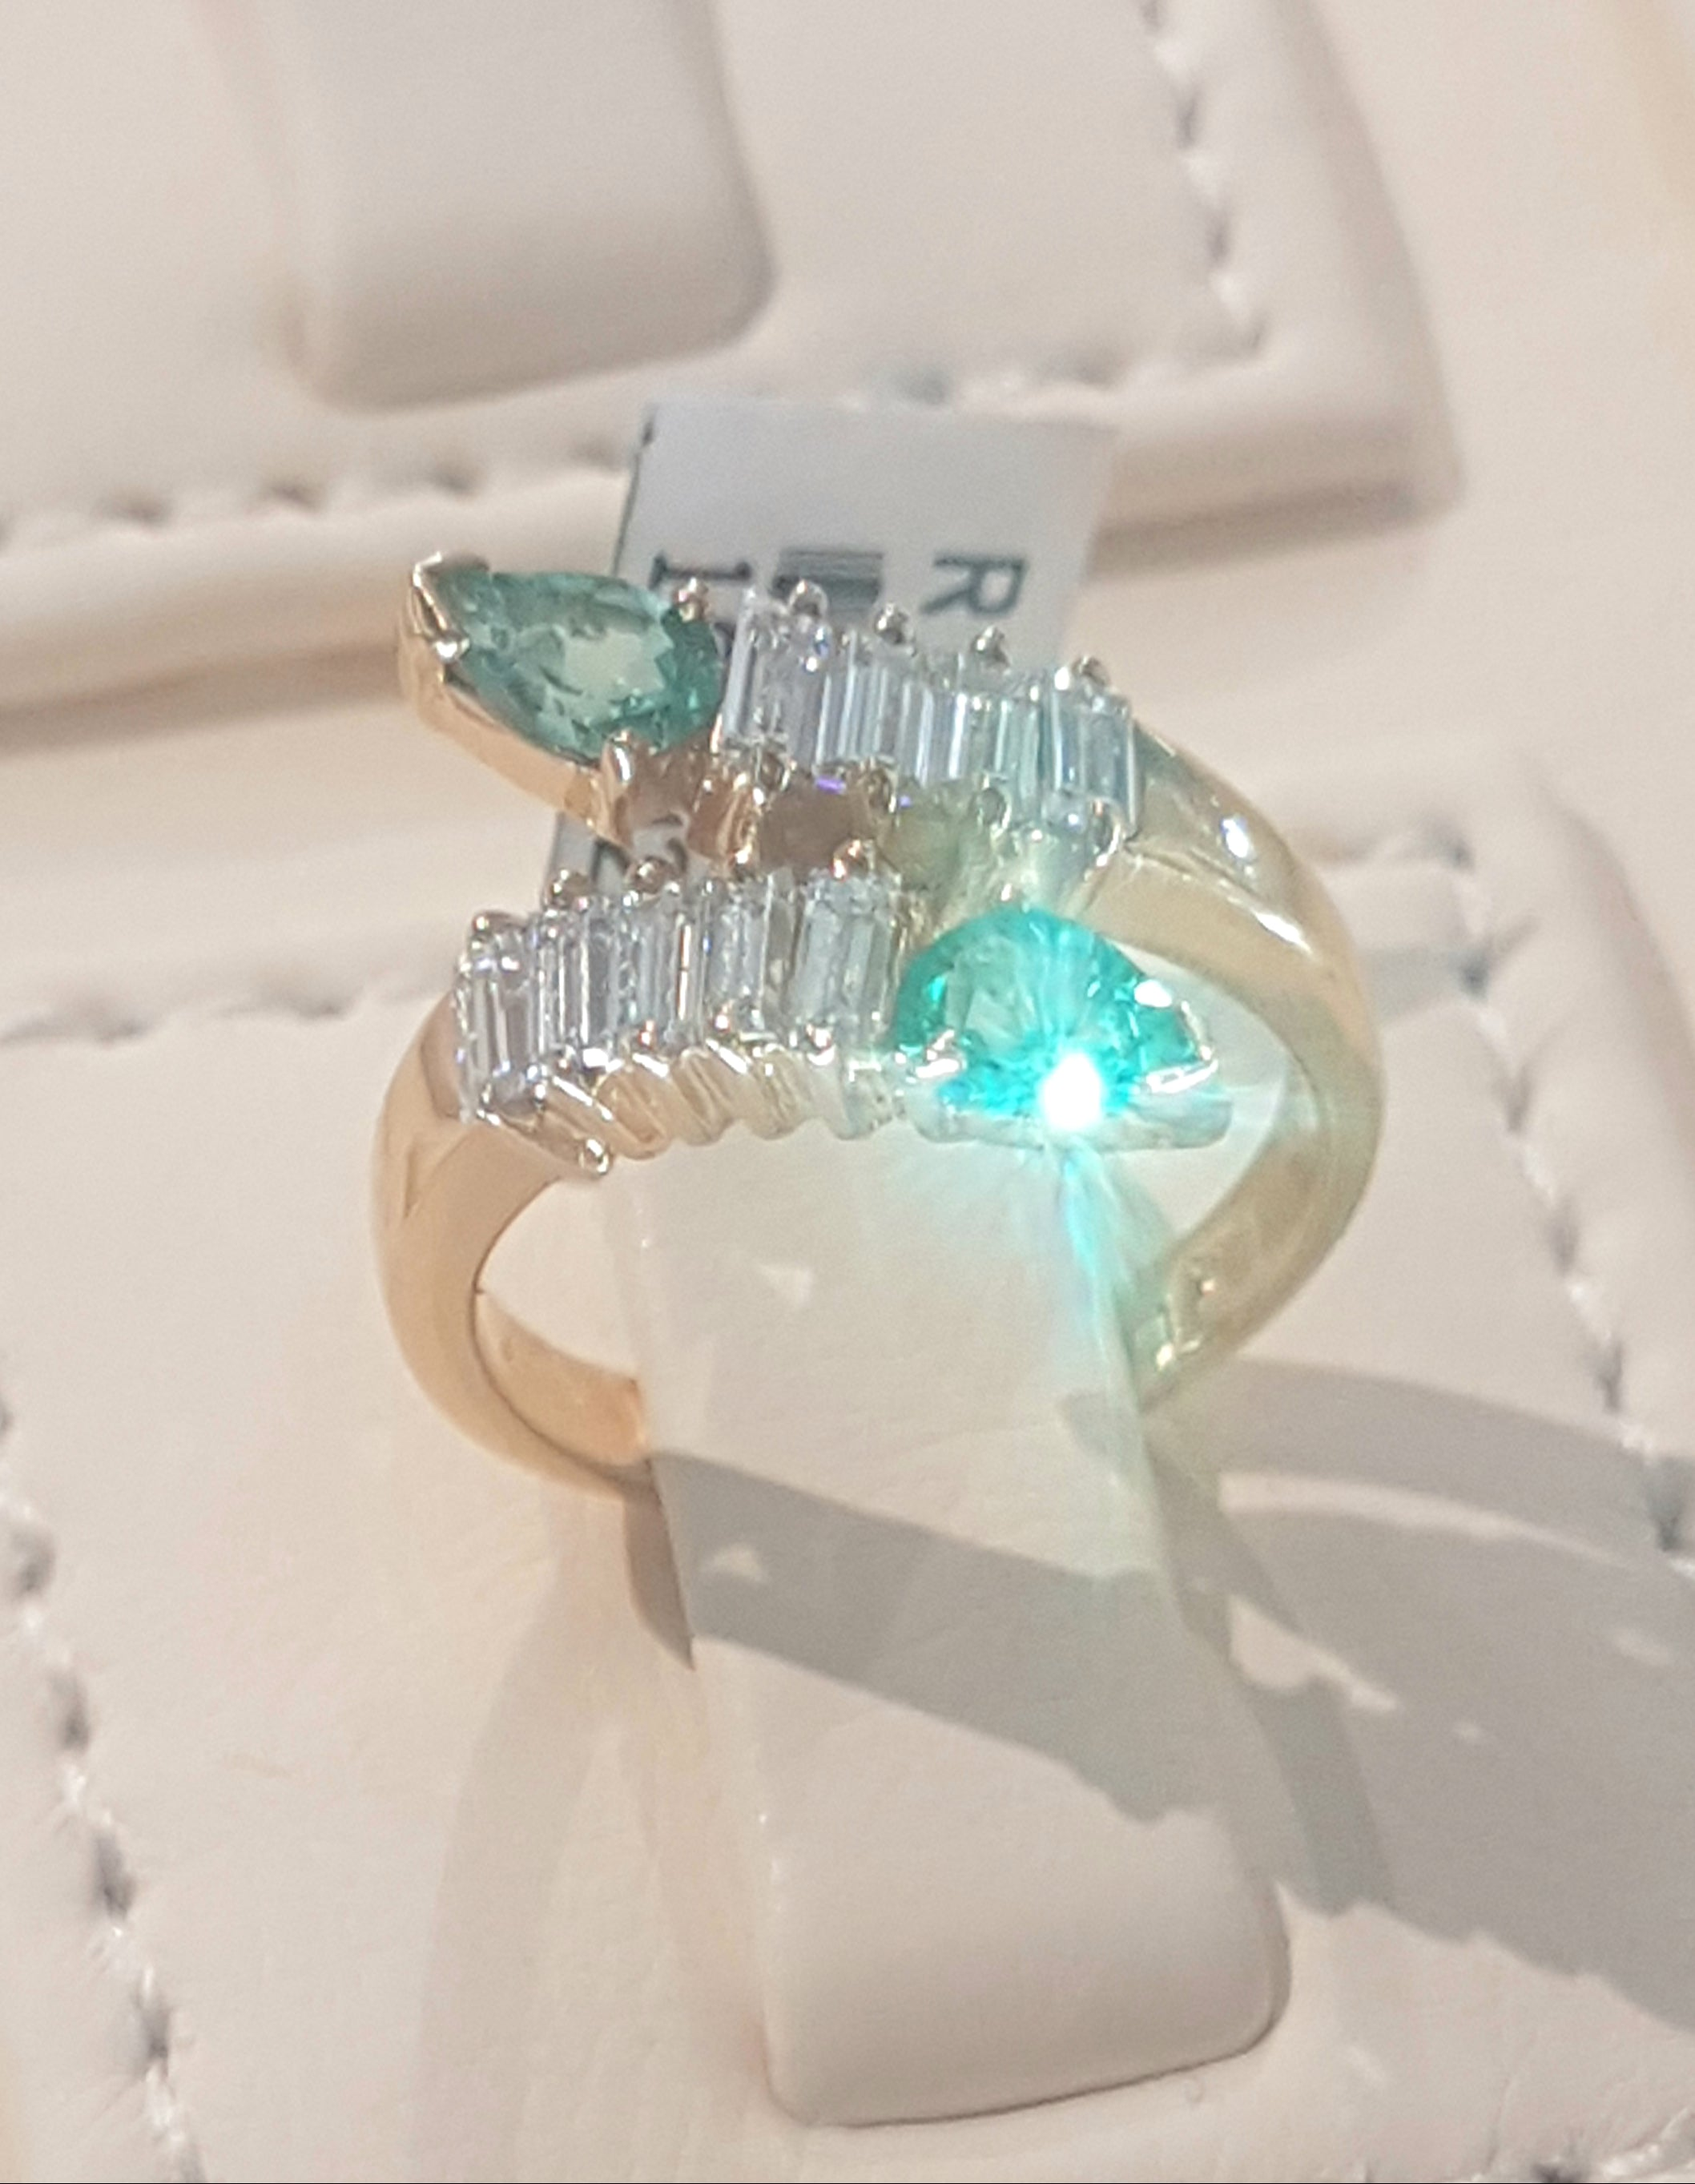 0.50cts Pear Cut Emeralds | 0.85ct Emerald Cut Diamonds | Designer Ring | 14kt Yellow Gold